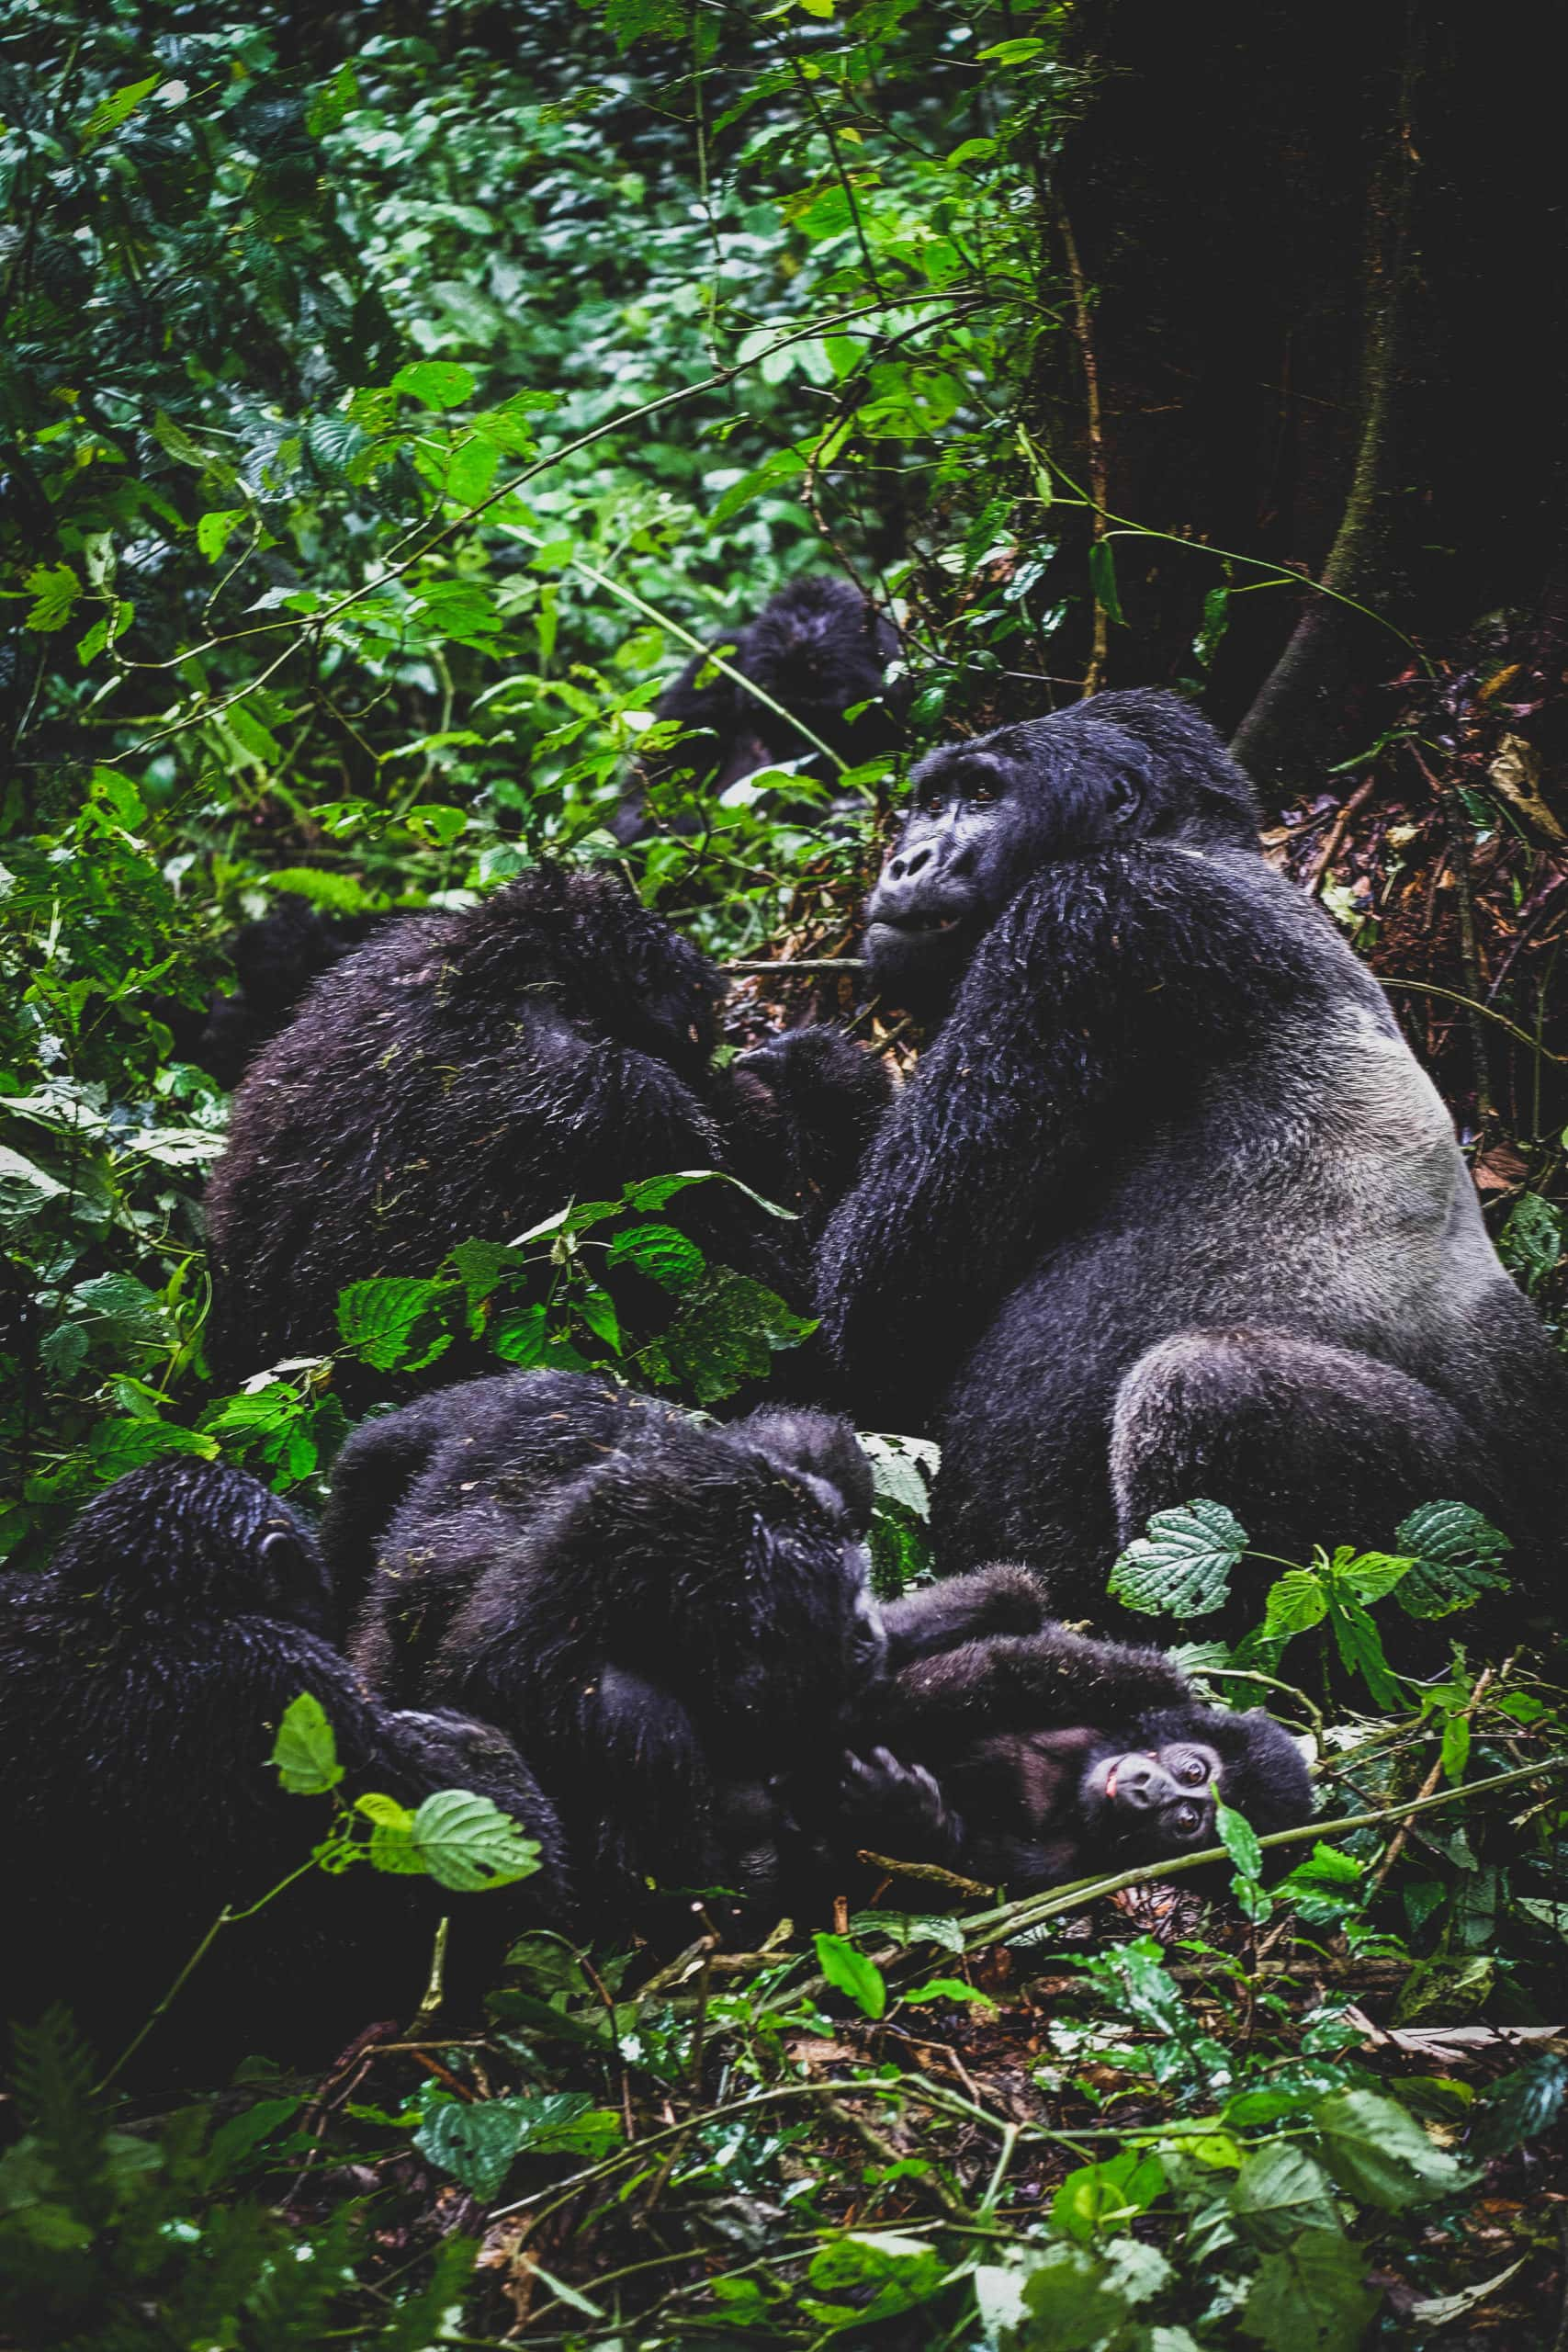 Gorilla Family in Bwindi Impenetrable Forest